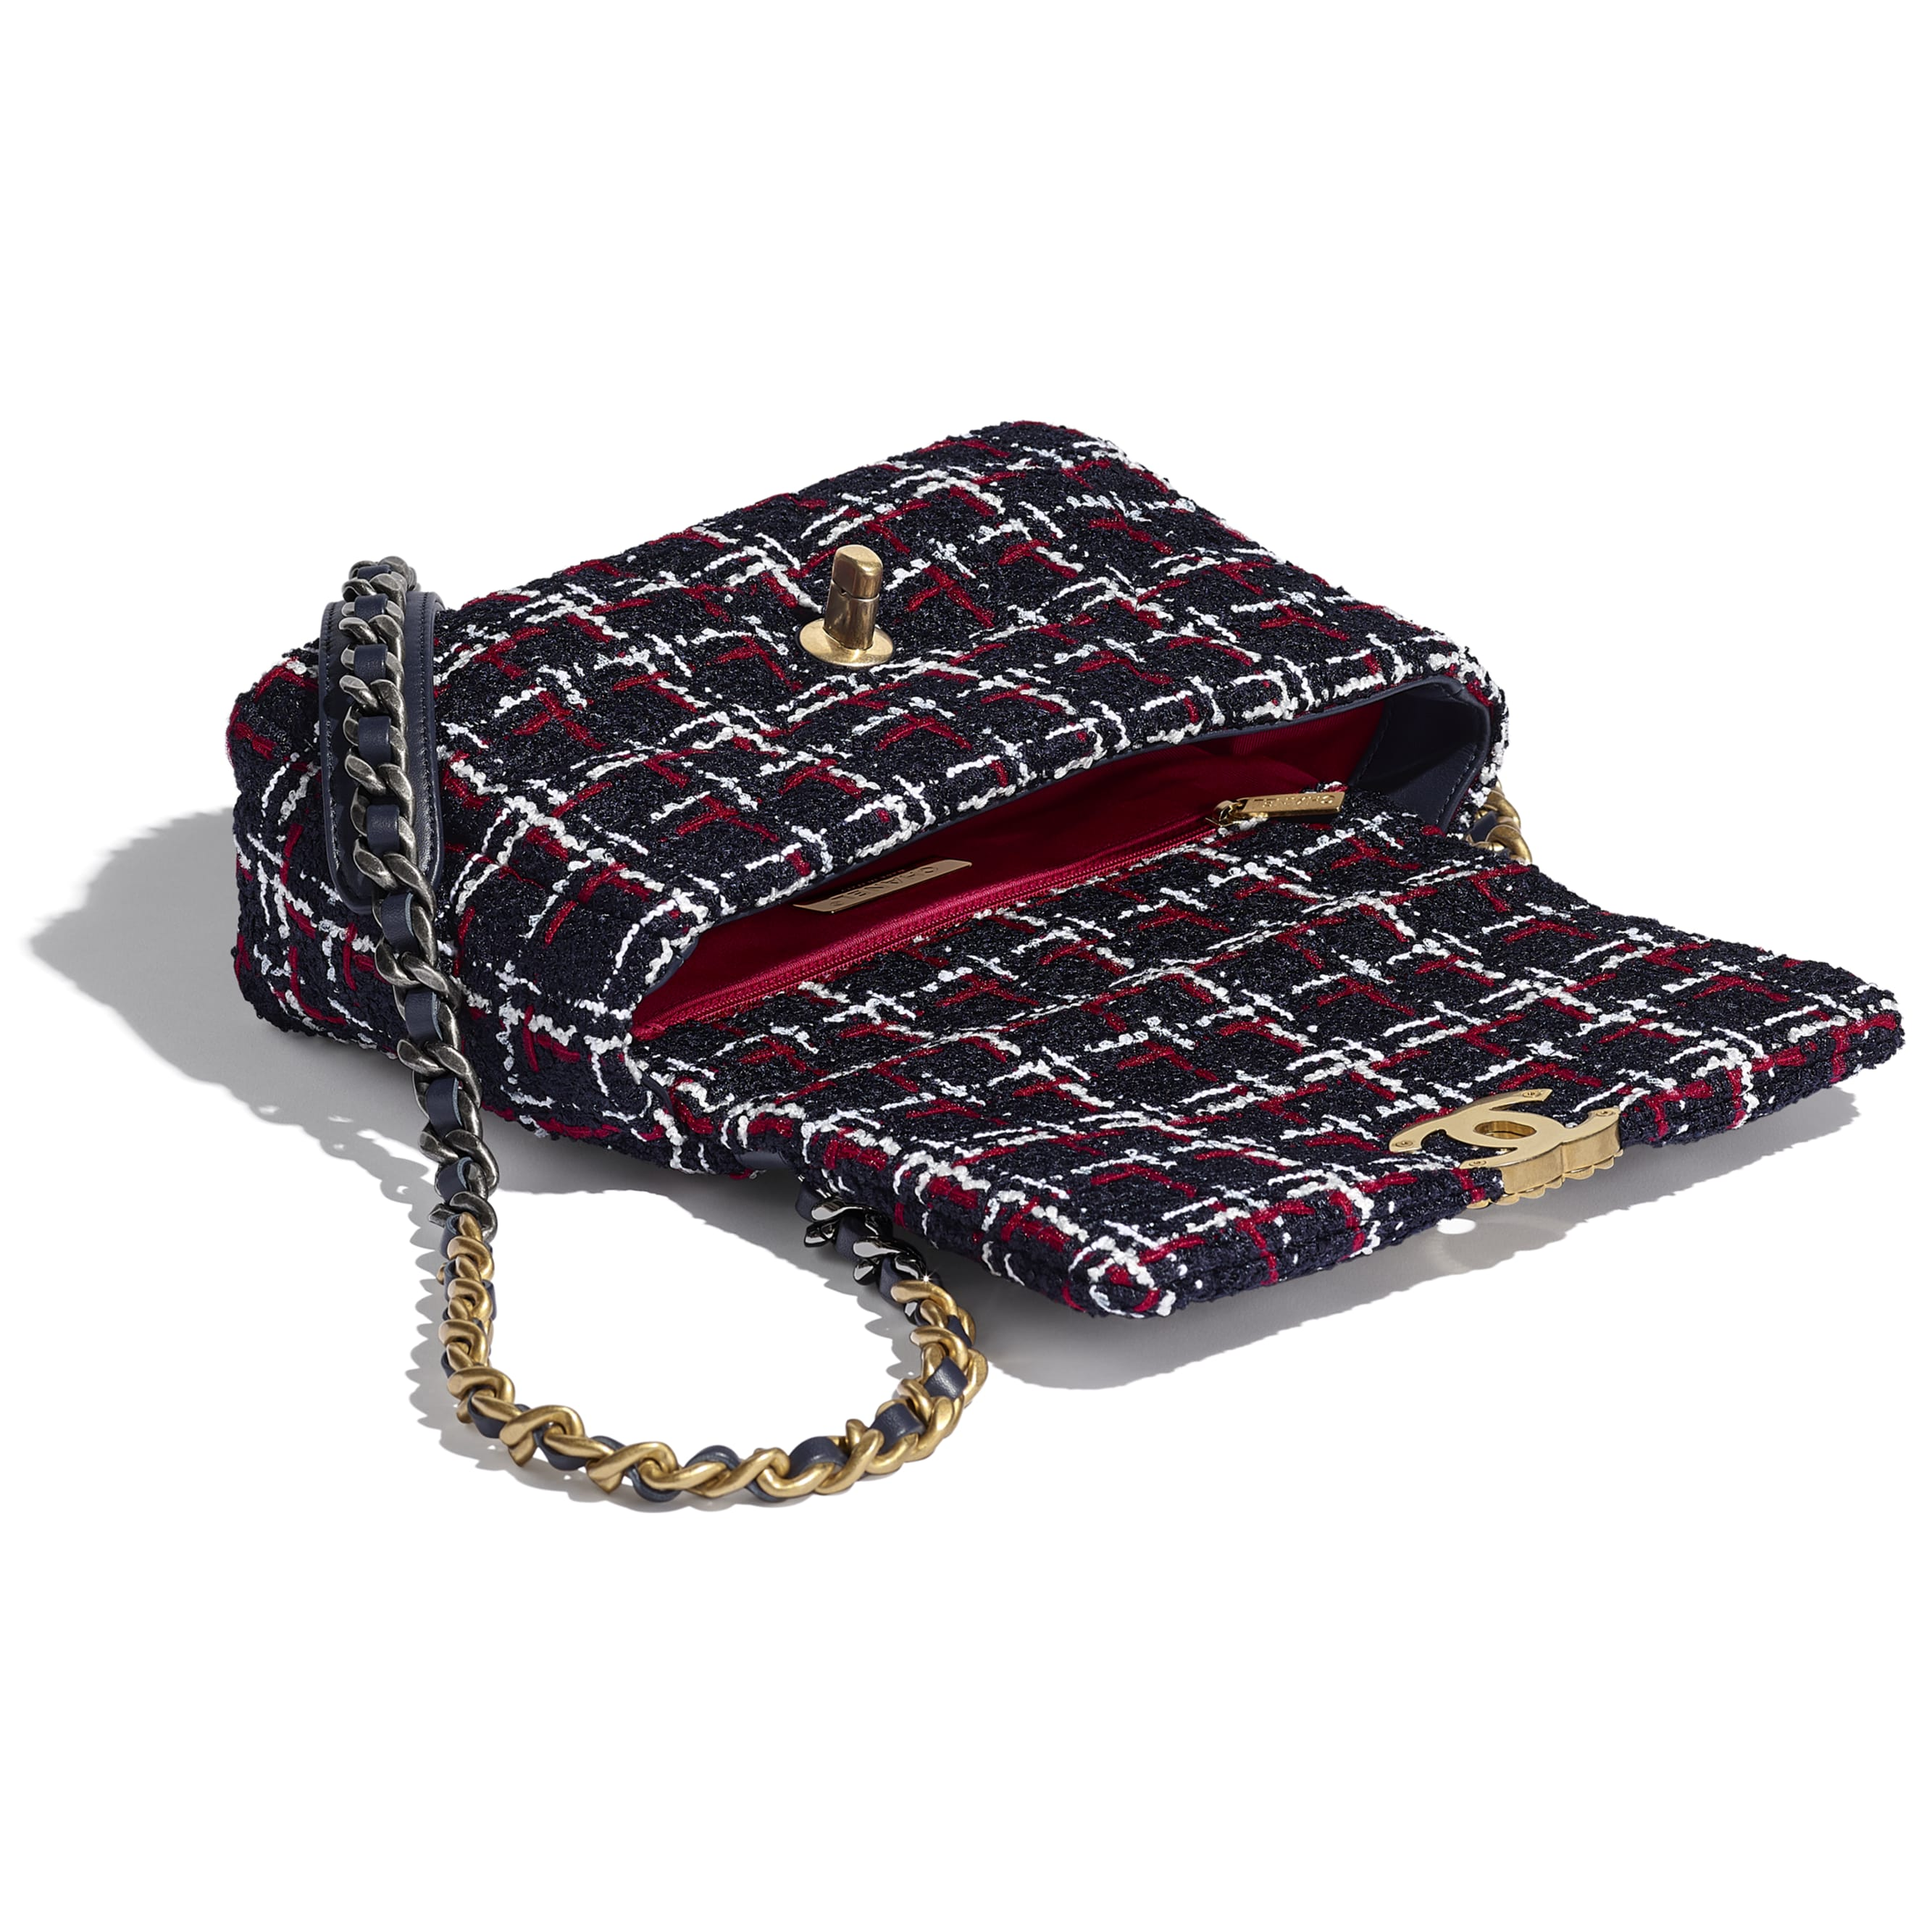 CHANEL 19 Flap Bag - Navy Blue, White & Red - Tweed, Gold-Tone, Silver-Tone & Ruthenium-Finish Metal - CHANEL - Other view - see standard sized version